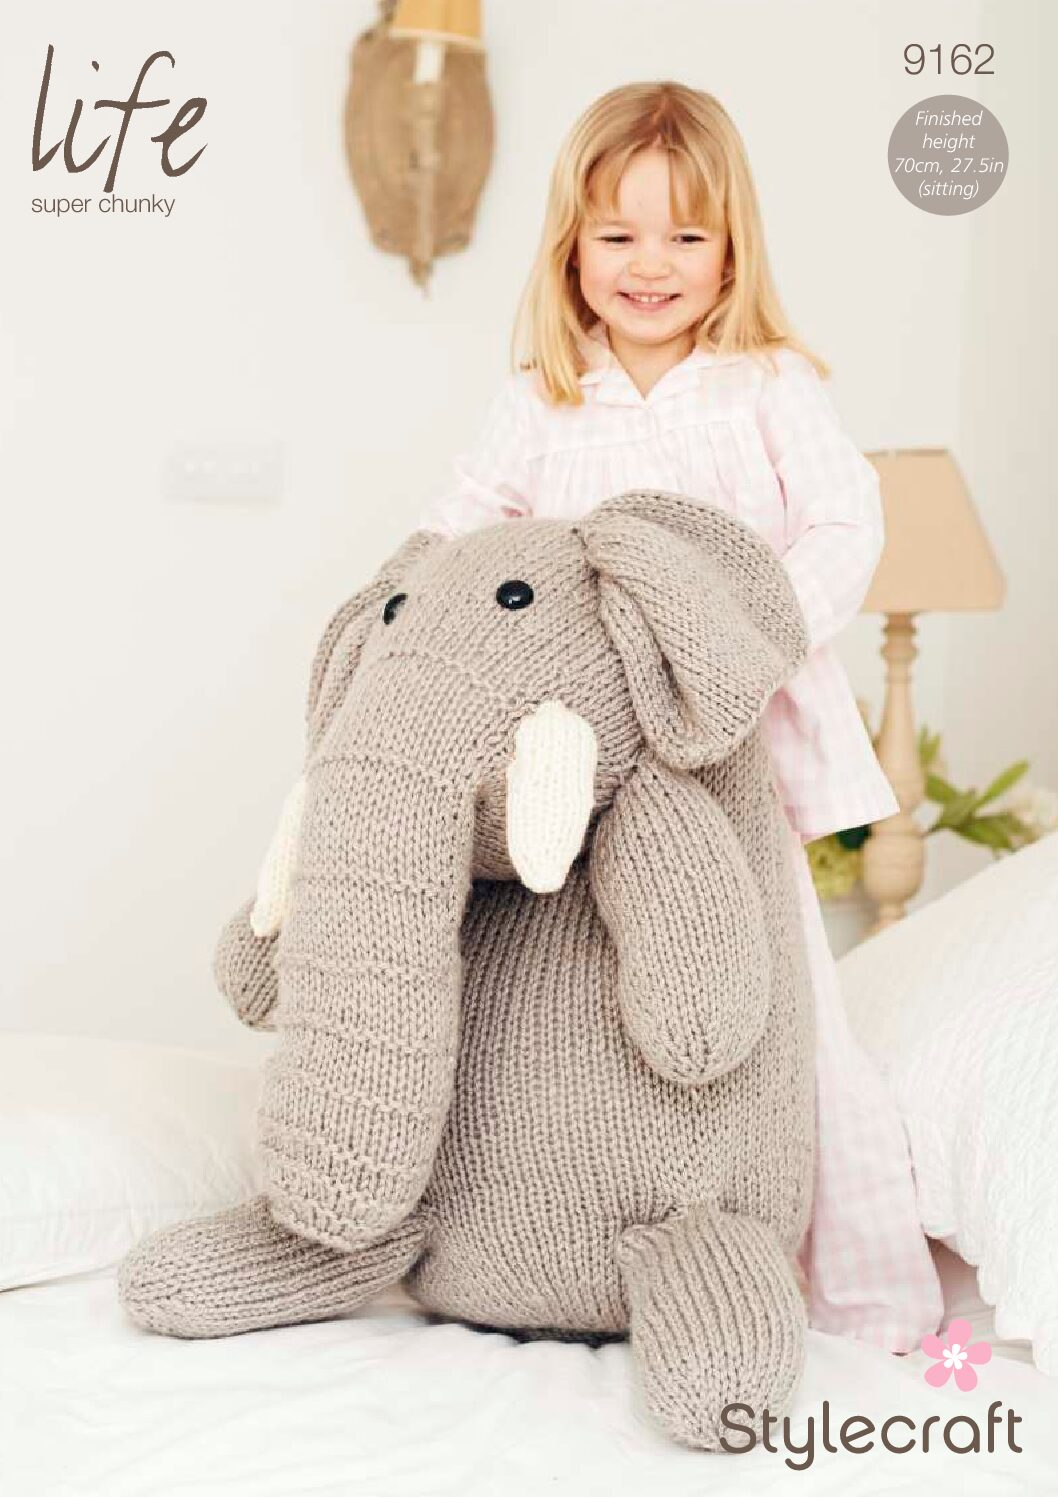 Stylecraft Pattern Life Super Chunky 9162 (download) product image